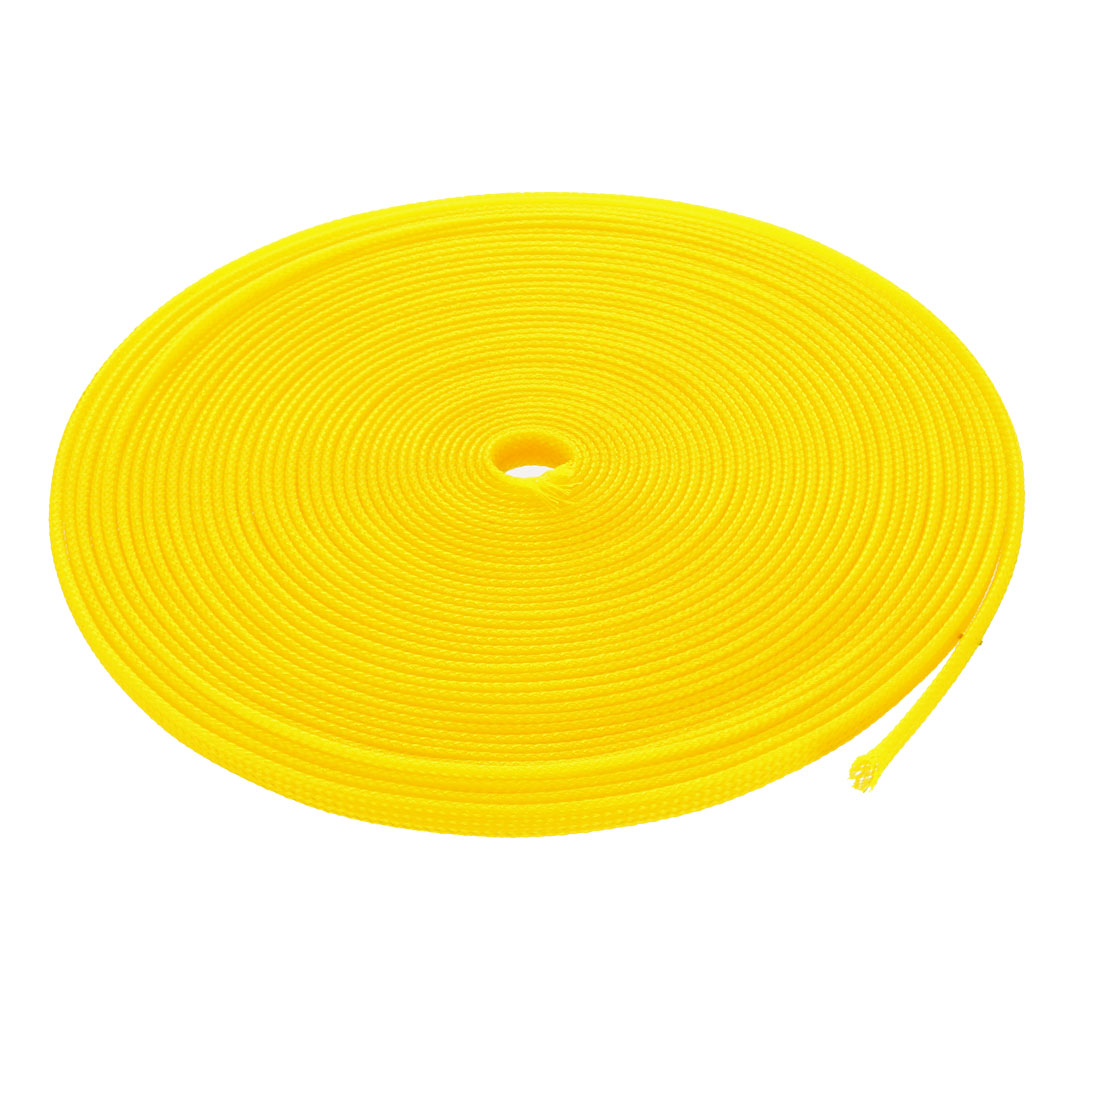 6mm Dia Tight Braided PET Expandable Sleeving Cable Wire Wrap Sheath Yellow 10M